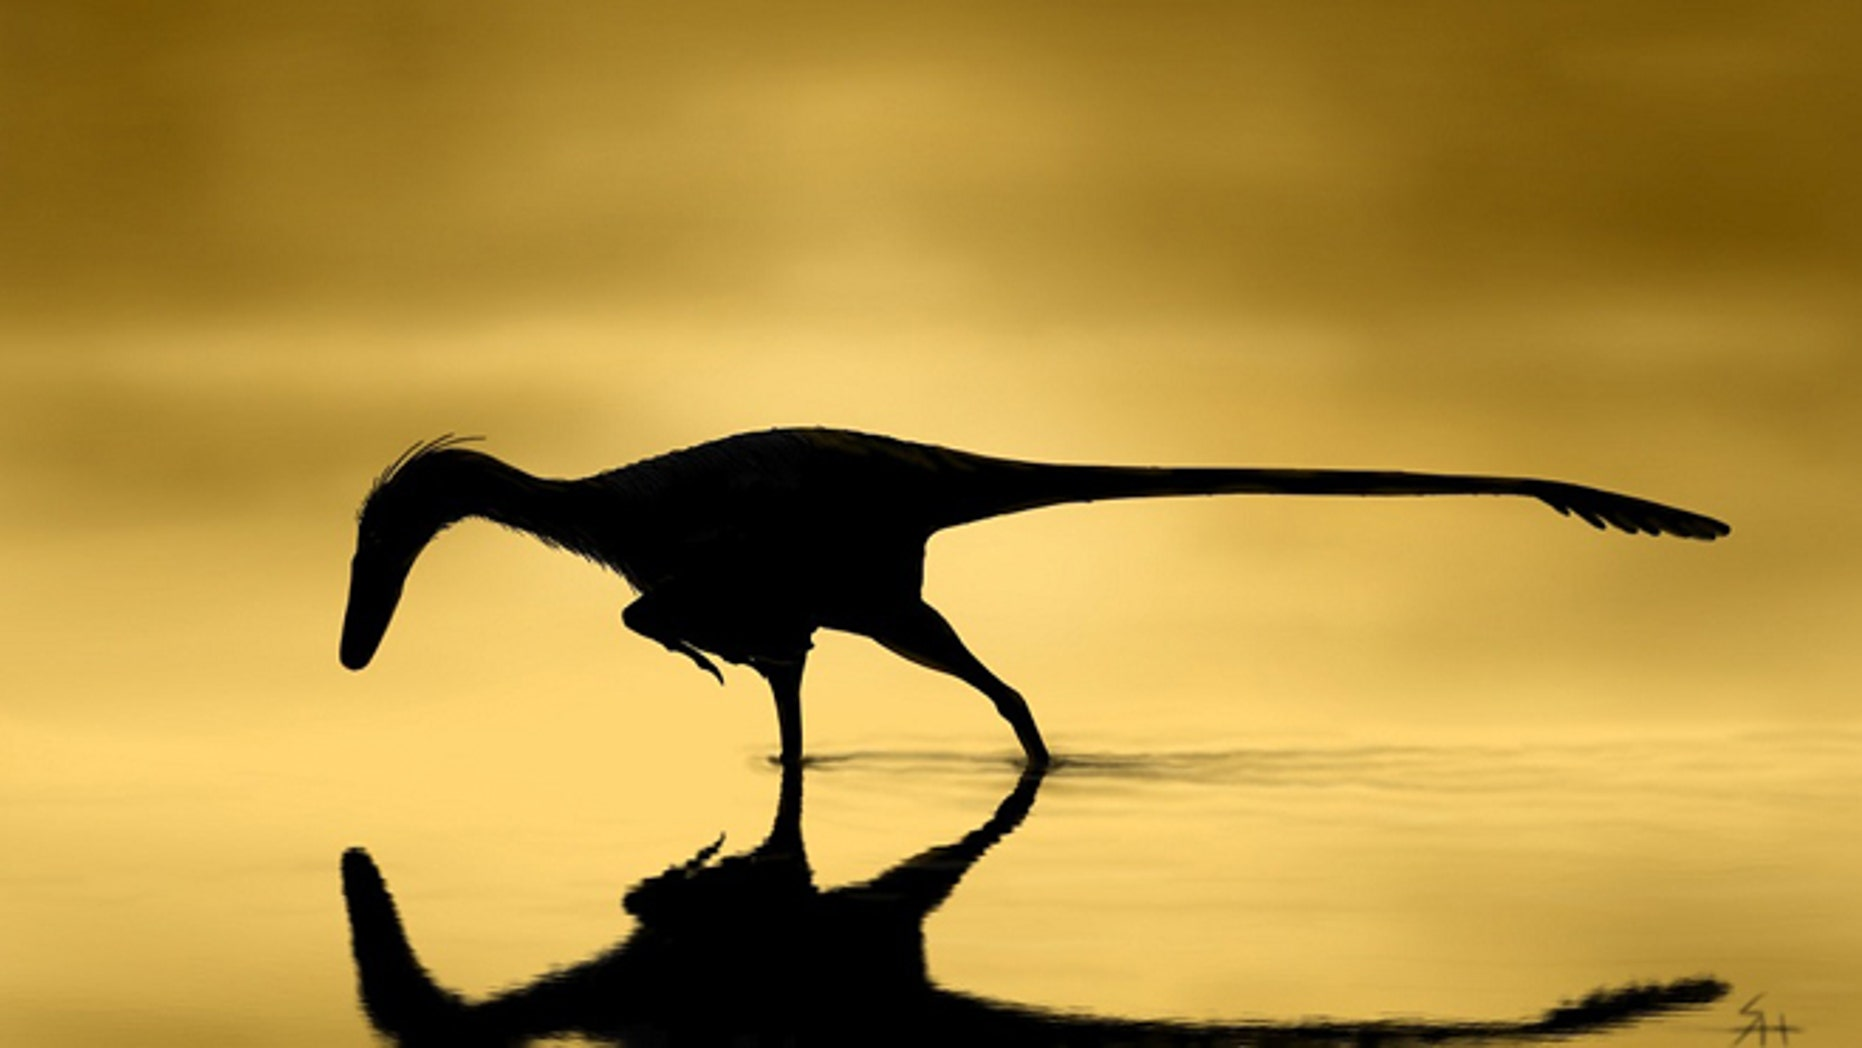 This image was created by Scott Hartman and shows the dinosaur Unenlagia comahuensis looking for fish at dawn.